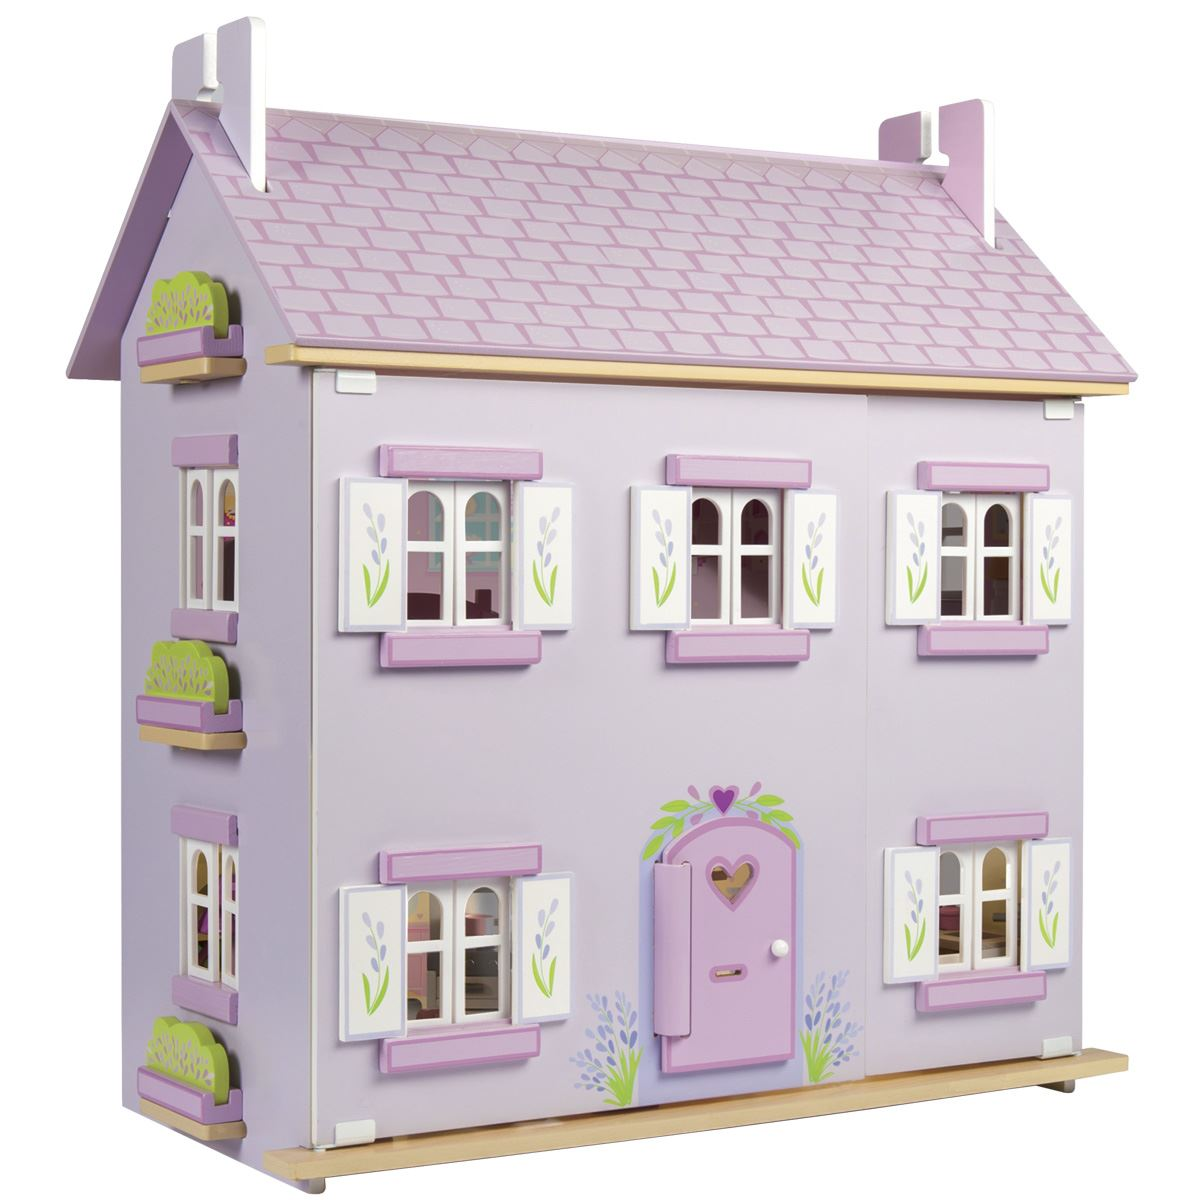 Toy Houses That Are Painted